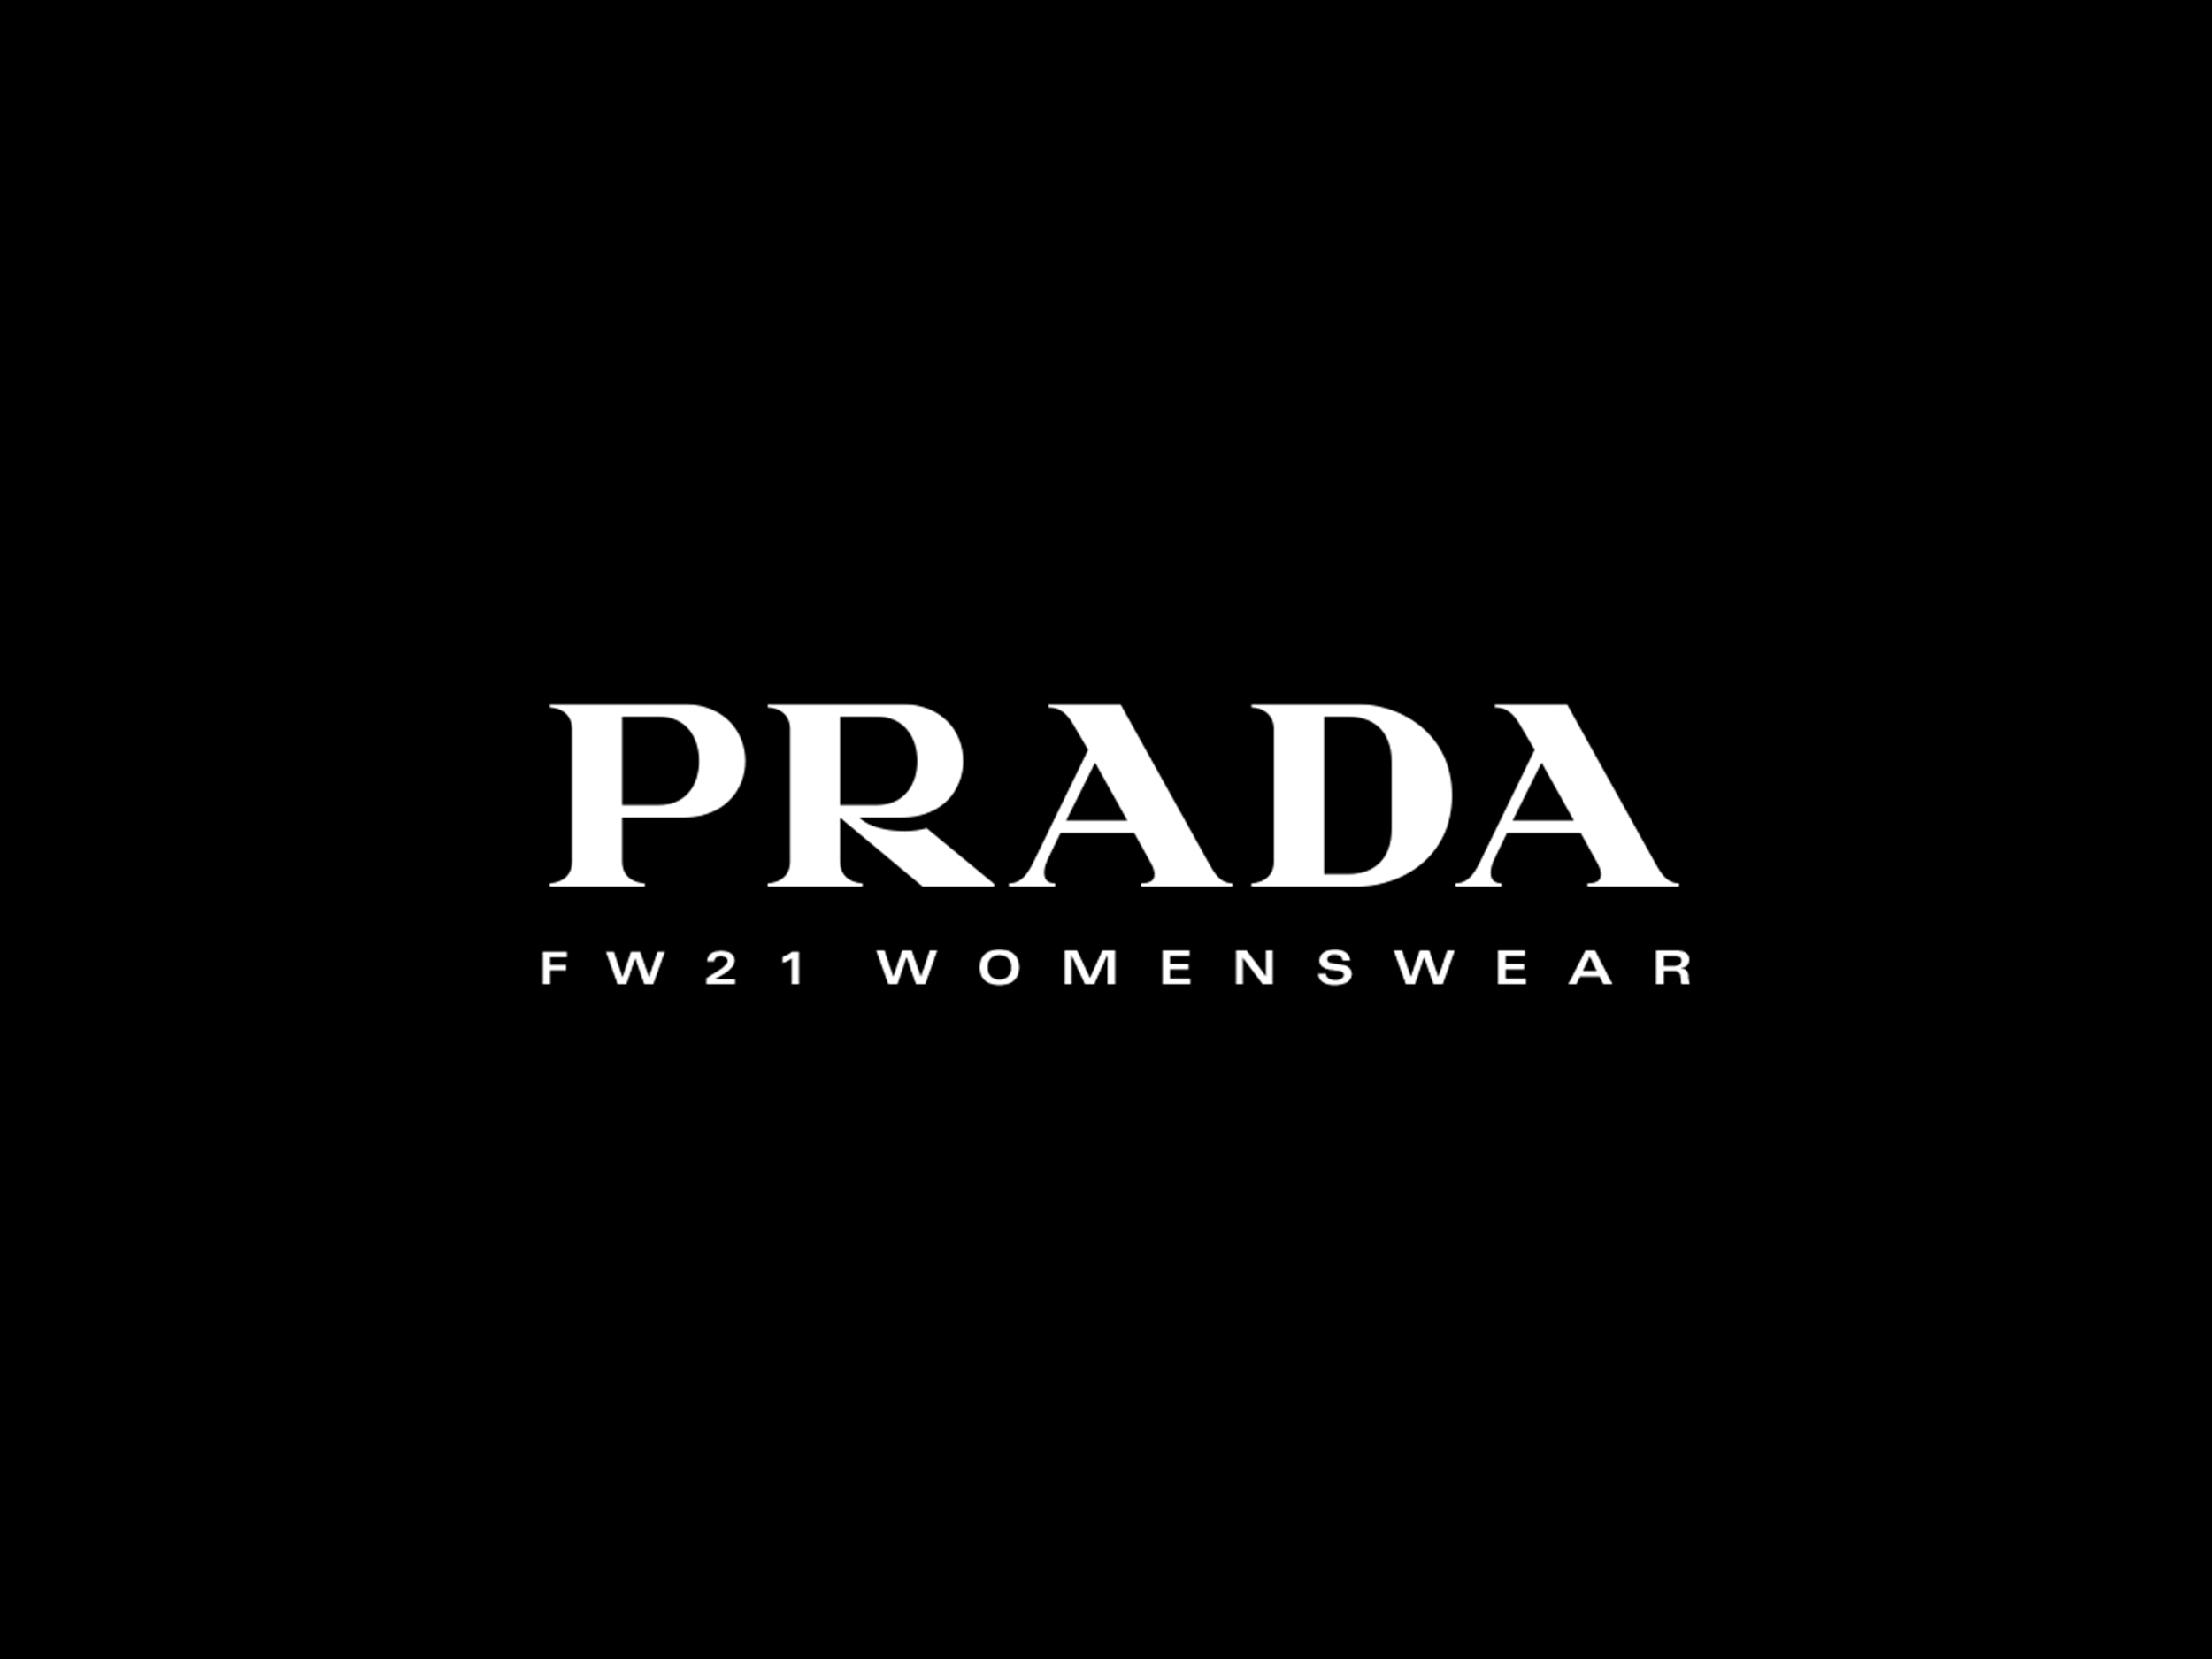 Livestream Prada's Womenswear Fall/Winter 2021 collection here